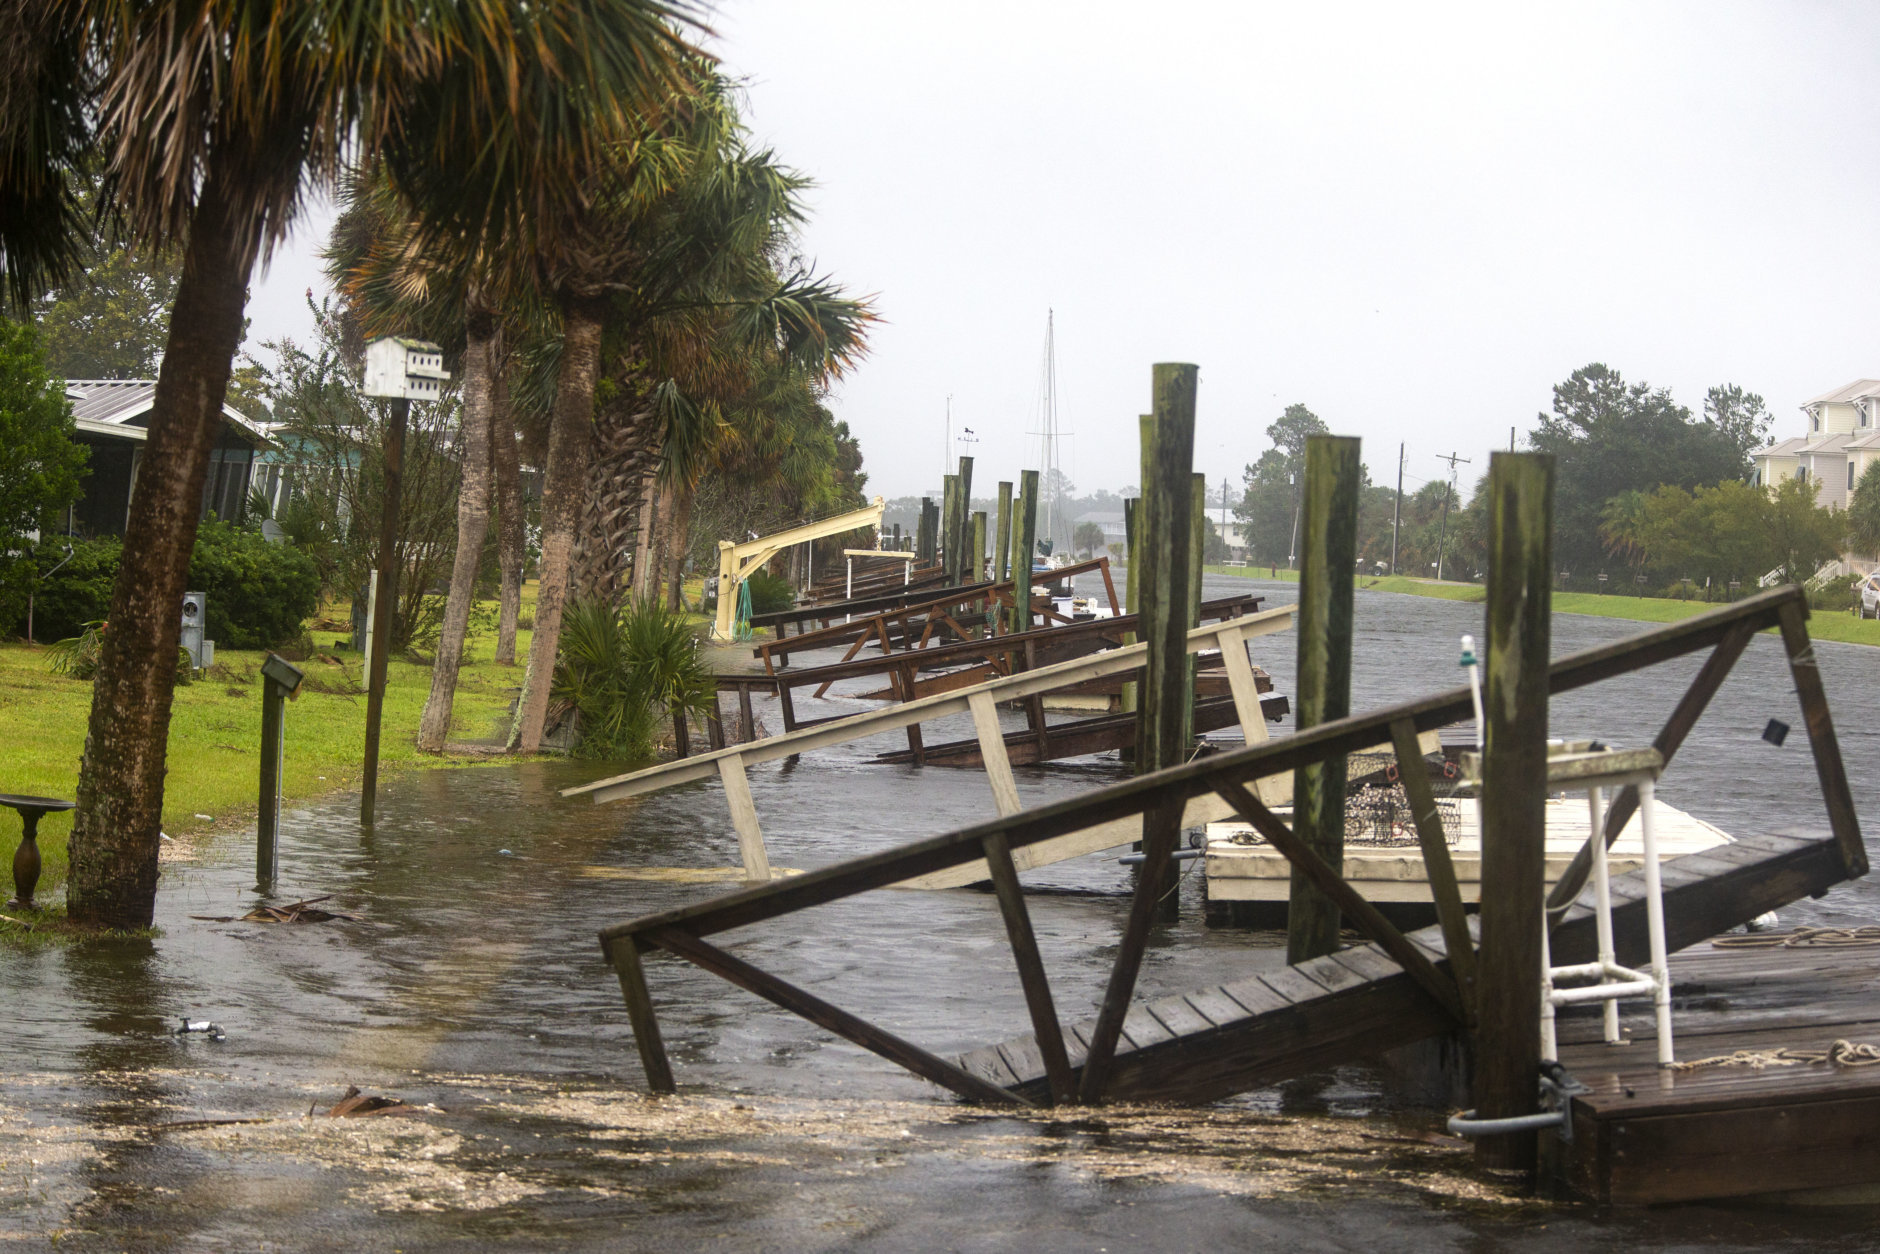 SHELL POINT BEACH, FL - OCTOBER 10: The storm surge from Hurricane Michael pushes into the homes four hours prior to high tide on October 10, 2018 in the Florida Panhandle community of Shell Point Beach, Florida. The hurricane is forecast to hit the Florida Panhandle at a possible category 4 storm.  (Photo by Mark Wallheiser/Getty Images) (Photo by Mark Wallheiser/Getty Images)